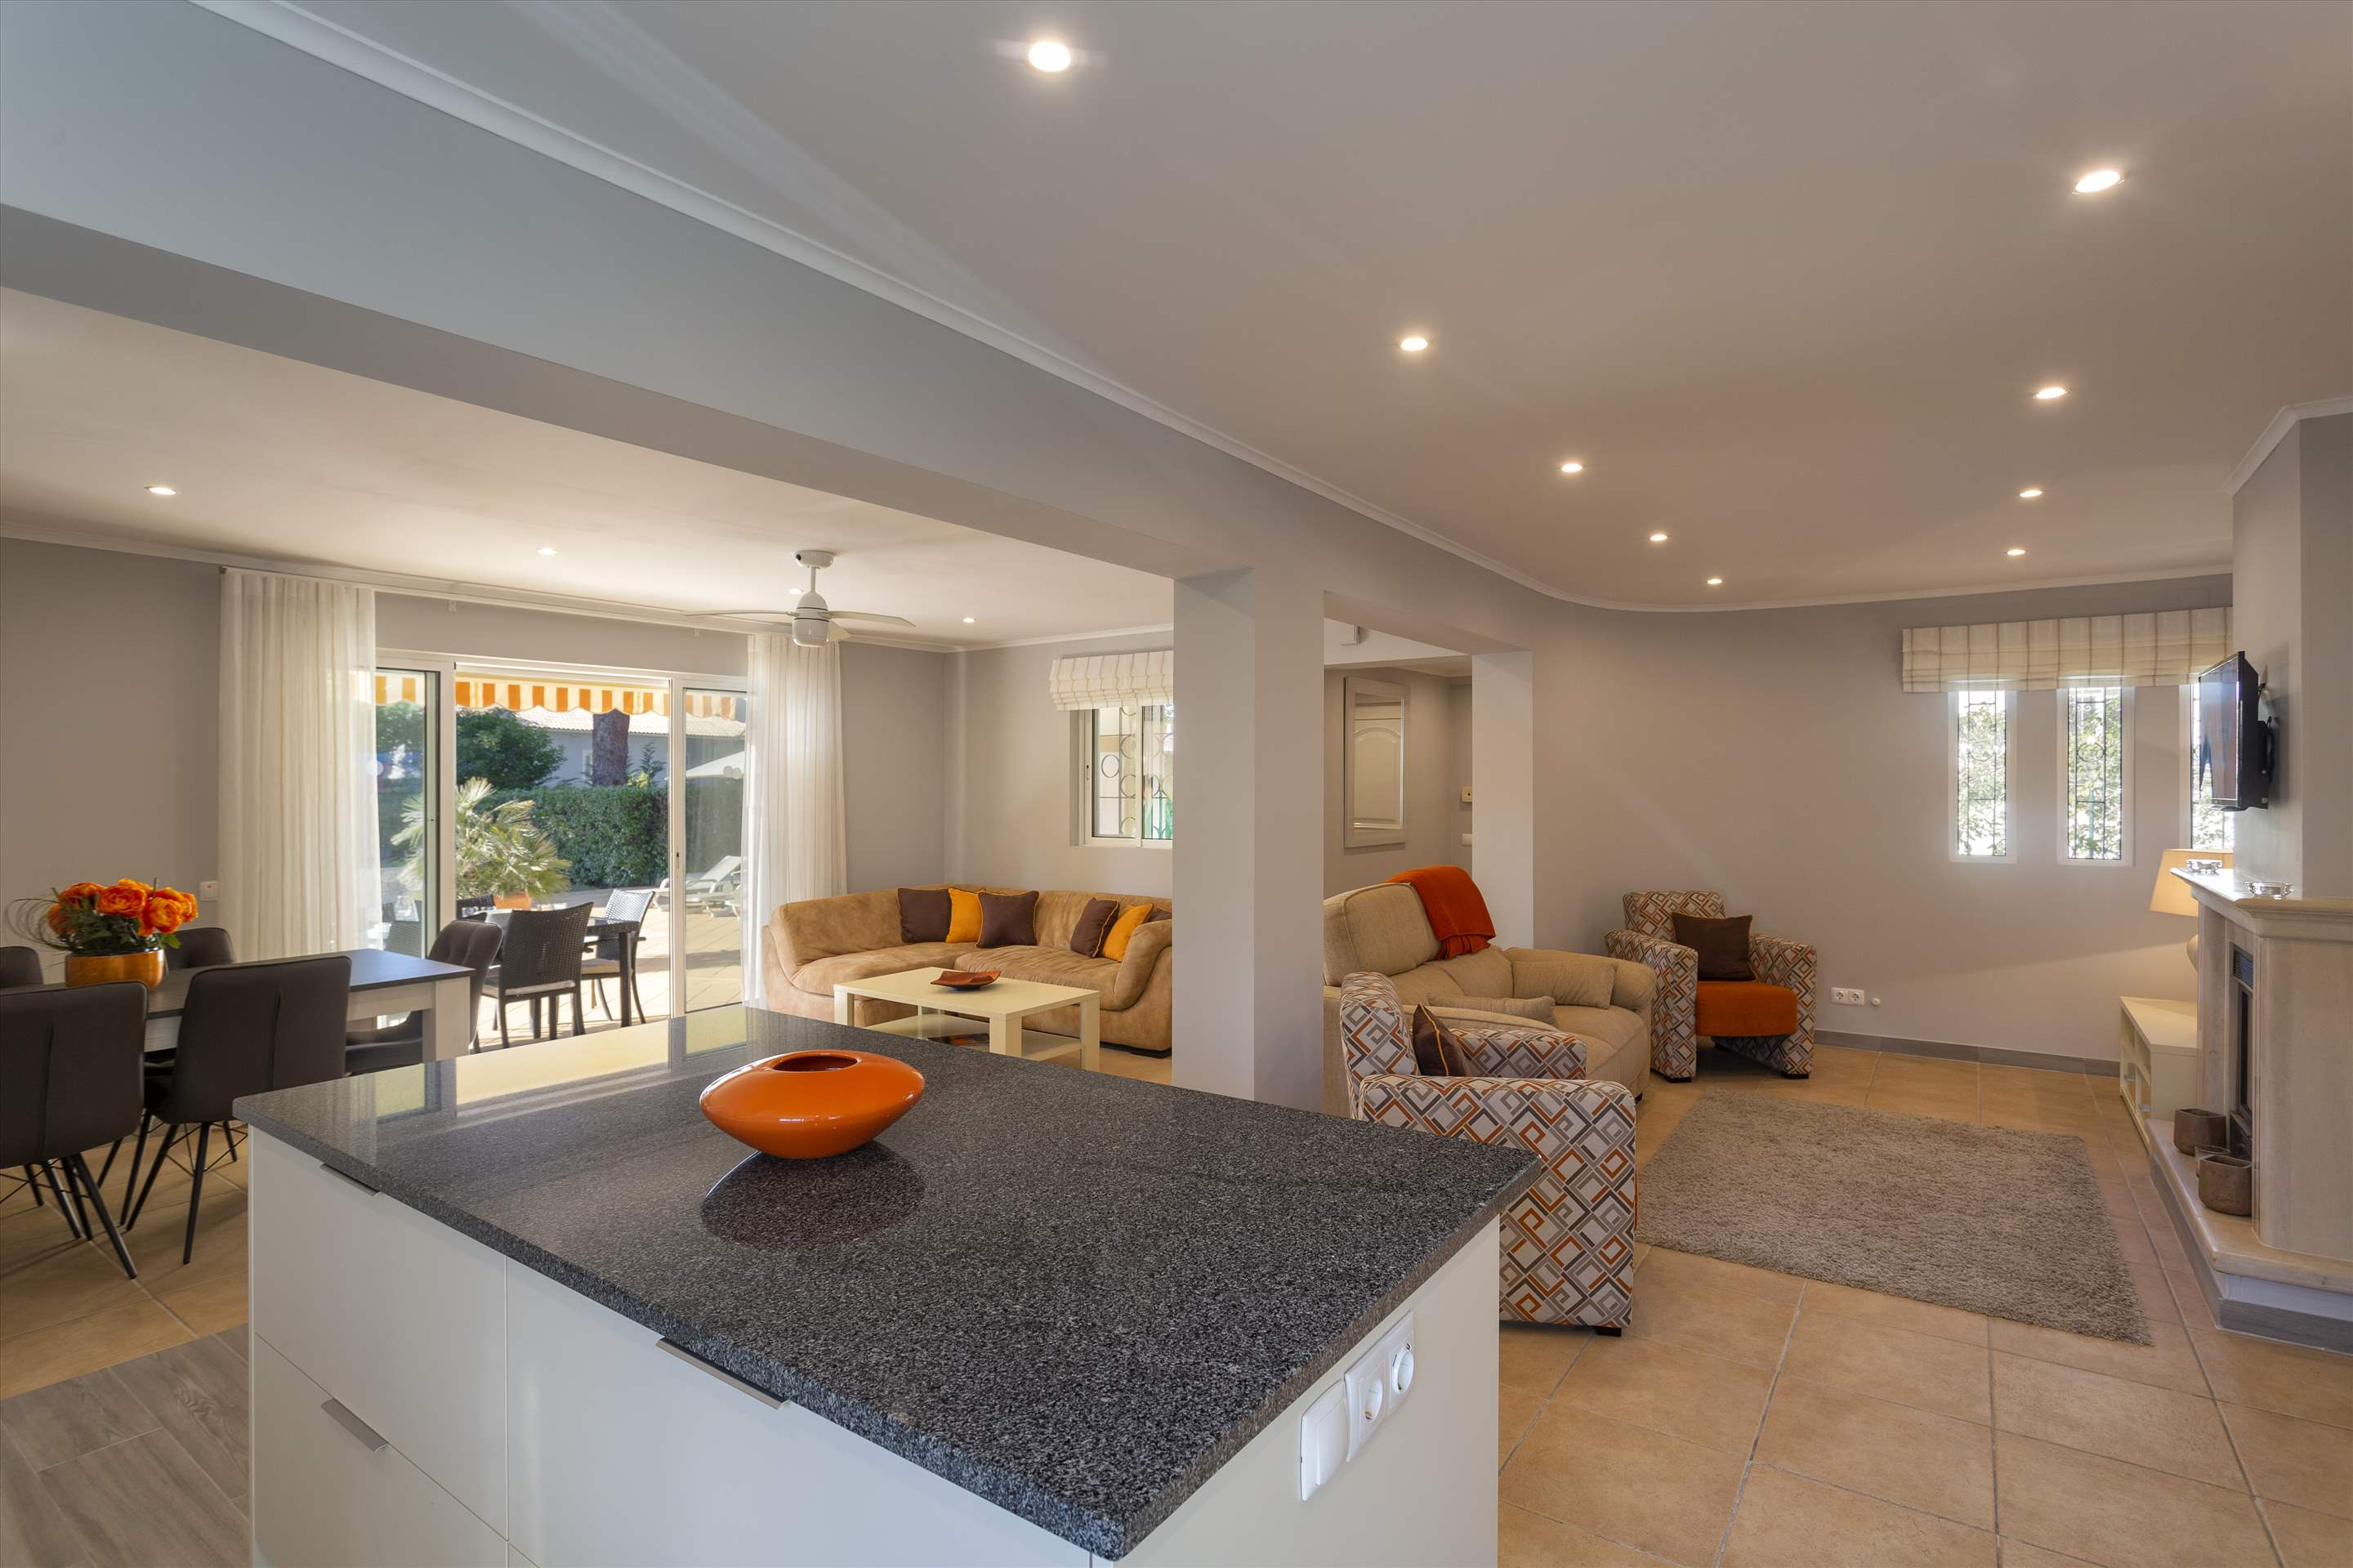 Villa Louanna, 3 bedroom villa in Vilamoura Area, Algarve Photo #10